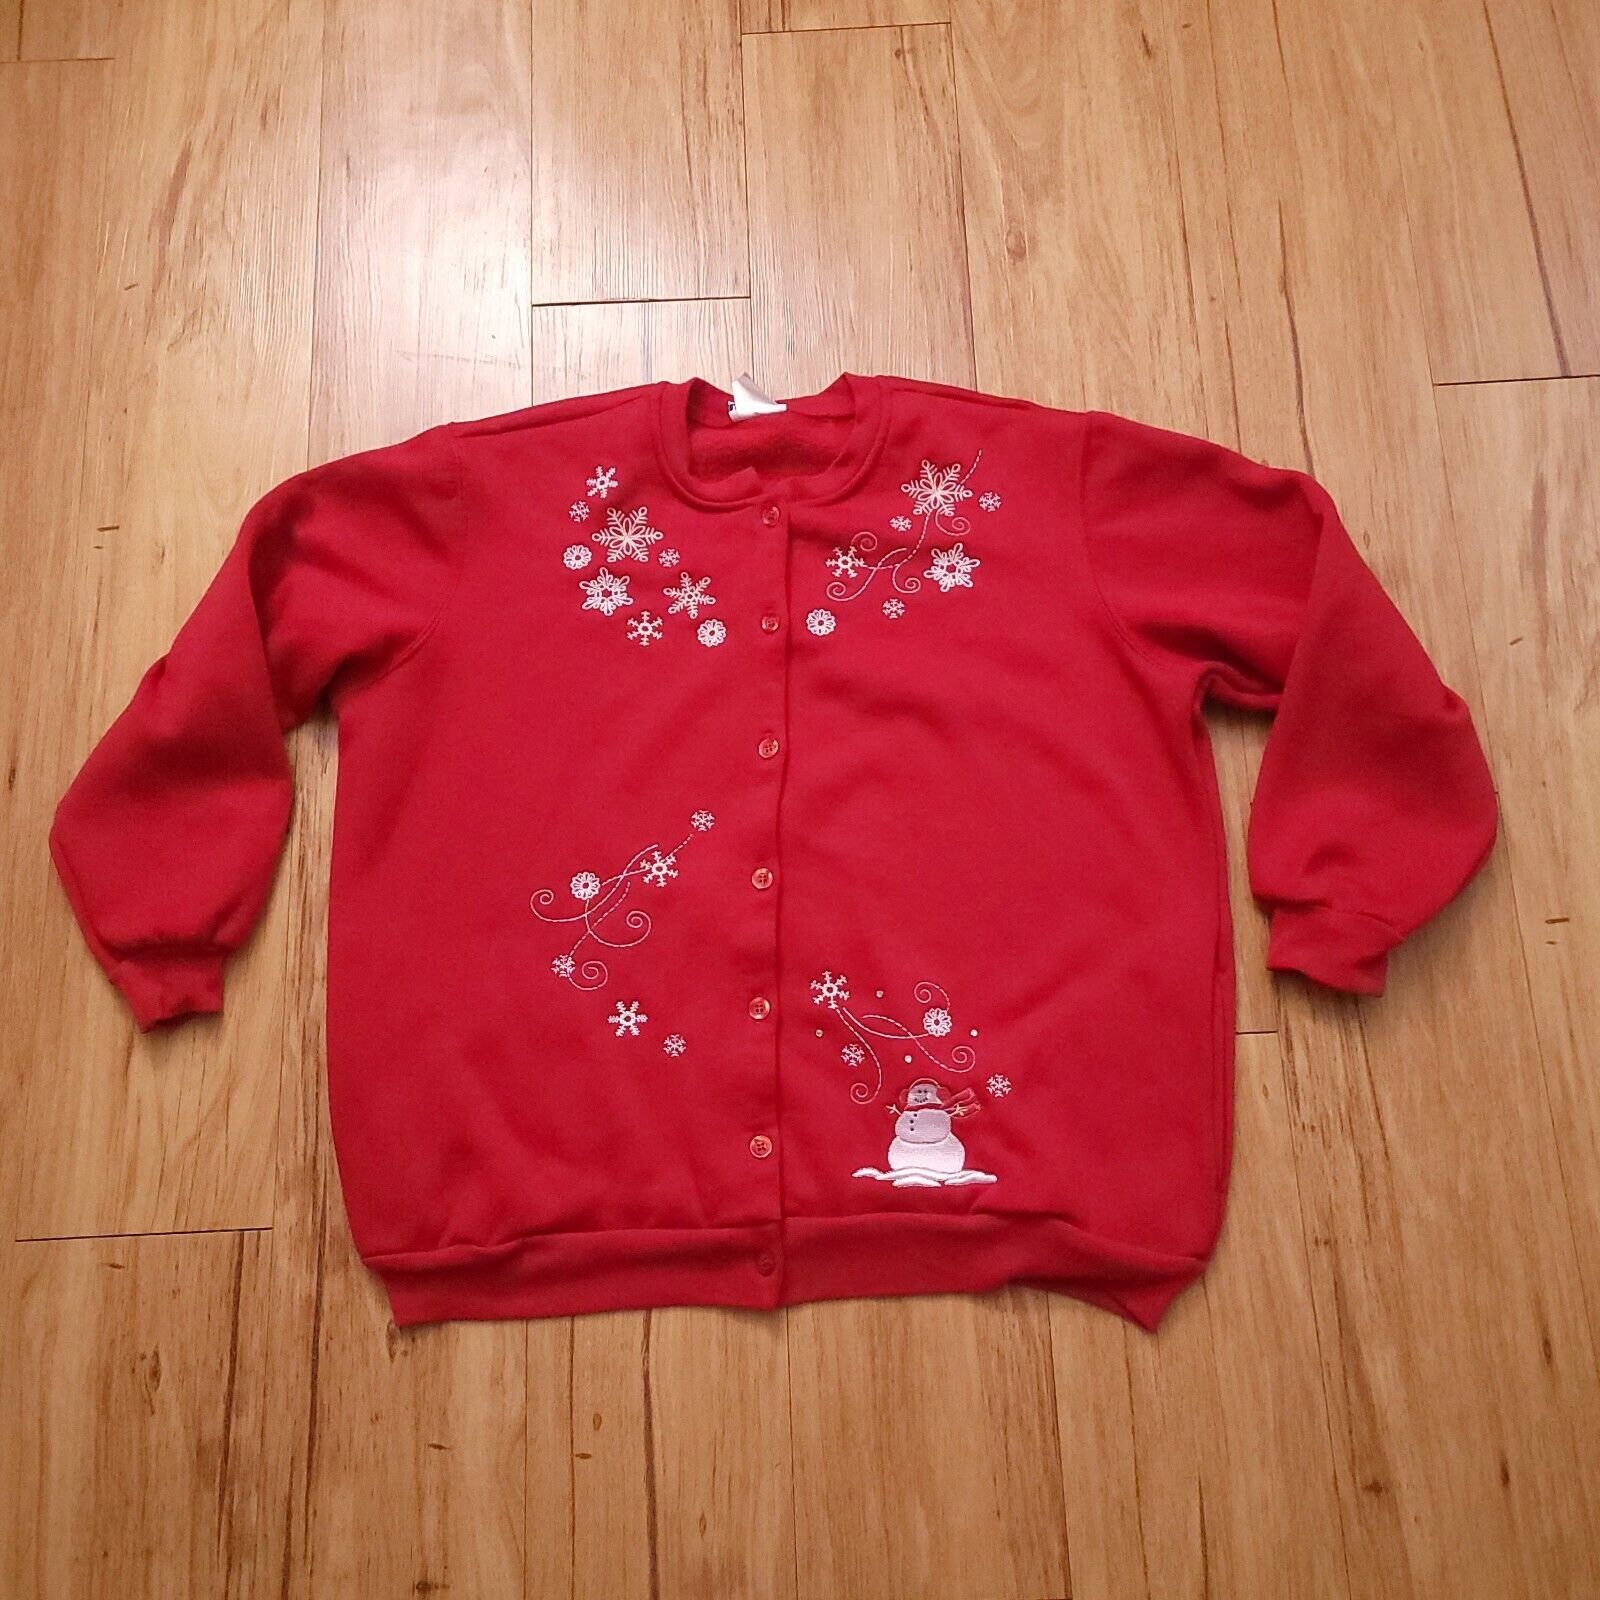 BonWorth Women's L Christmas Sweater Red Embroidered Snowman Snow Large